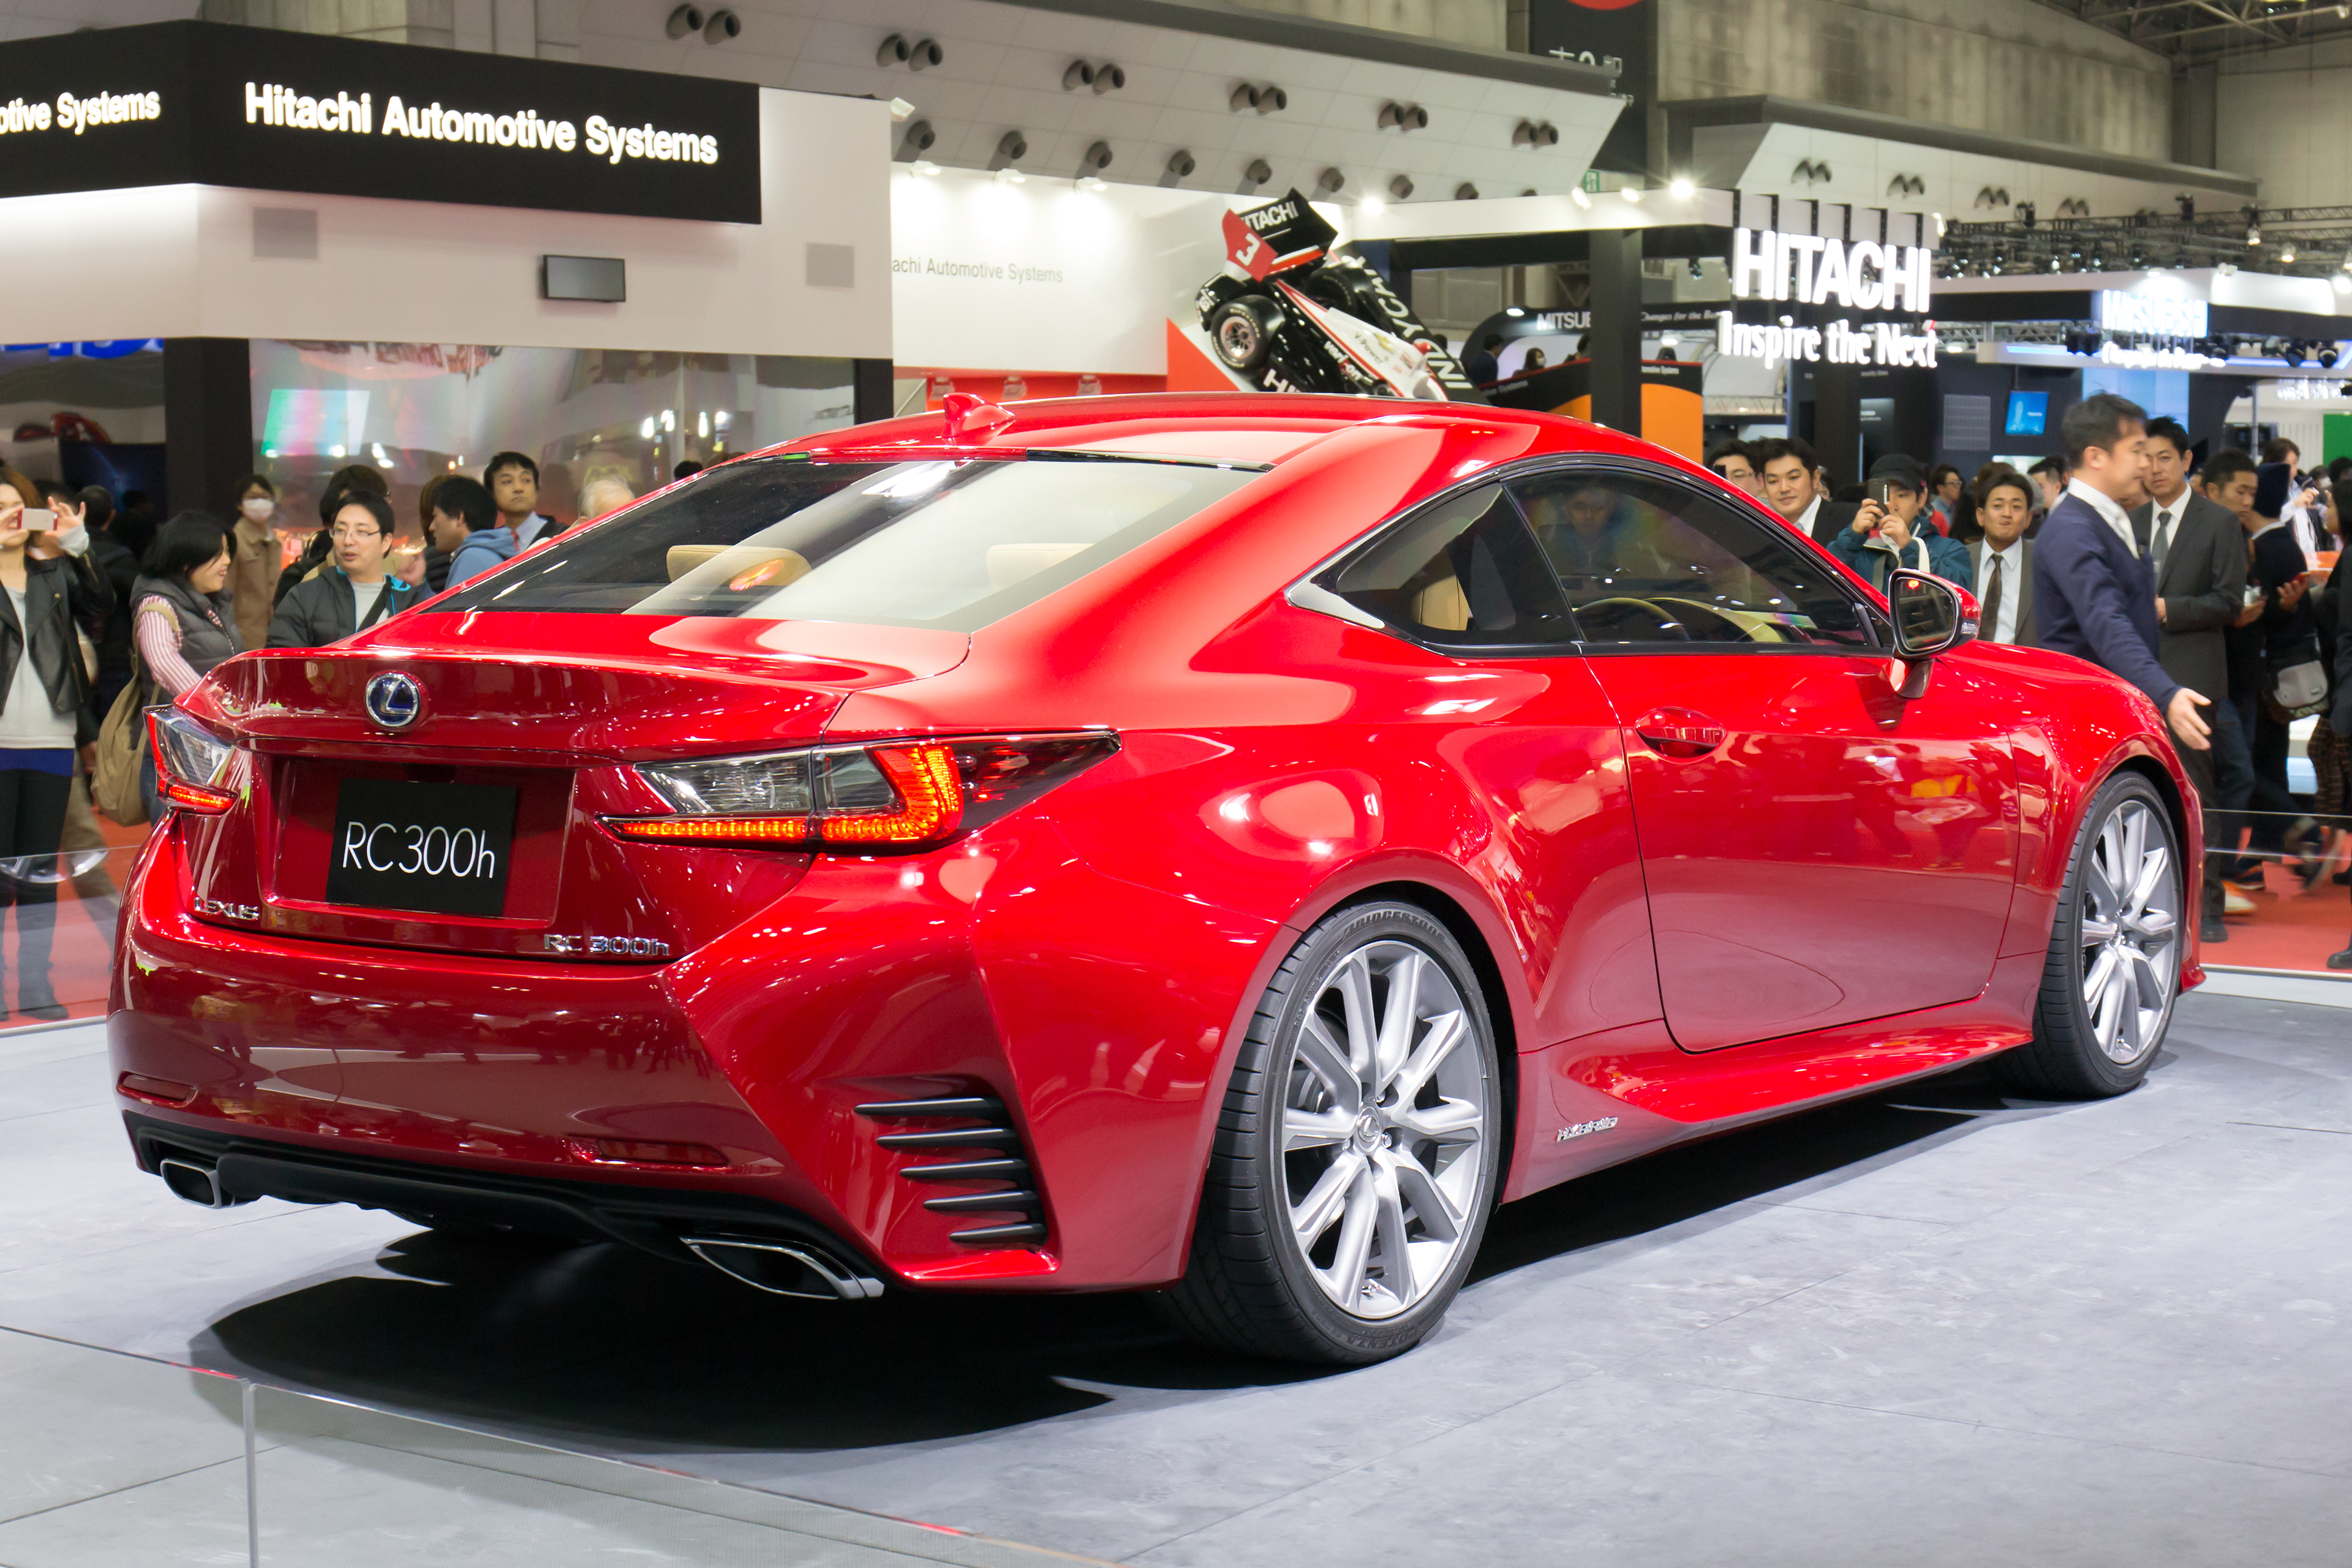 file lexus rc 300h rear right 2013 tokyo motor wikimedia commons. Black Bedroom Furniture Sets. Home Design Ideas